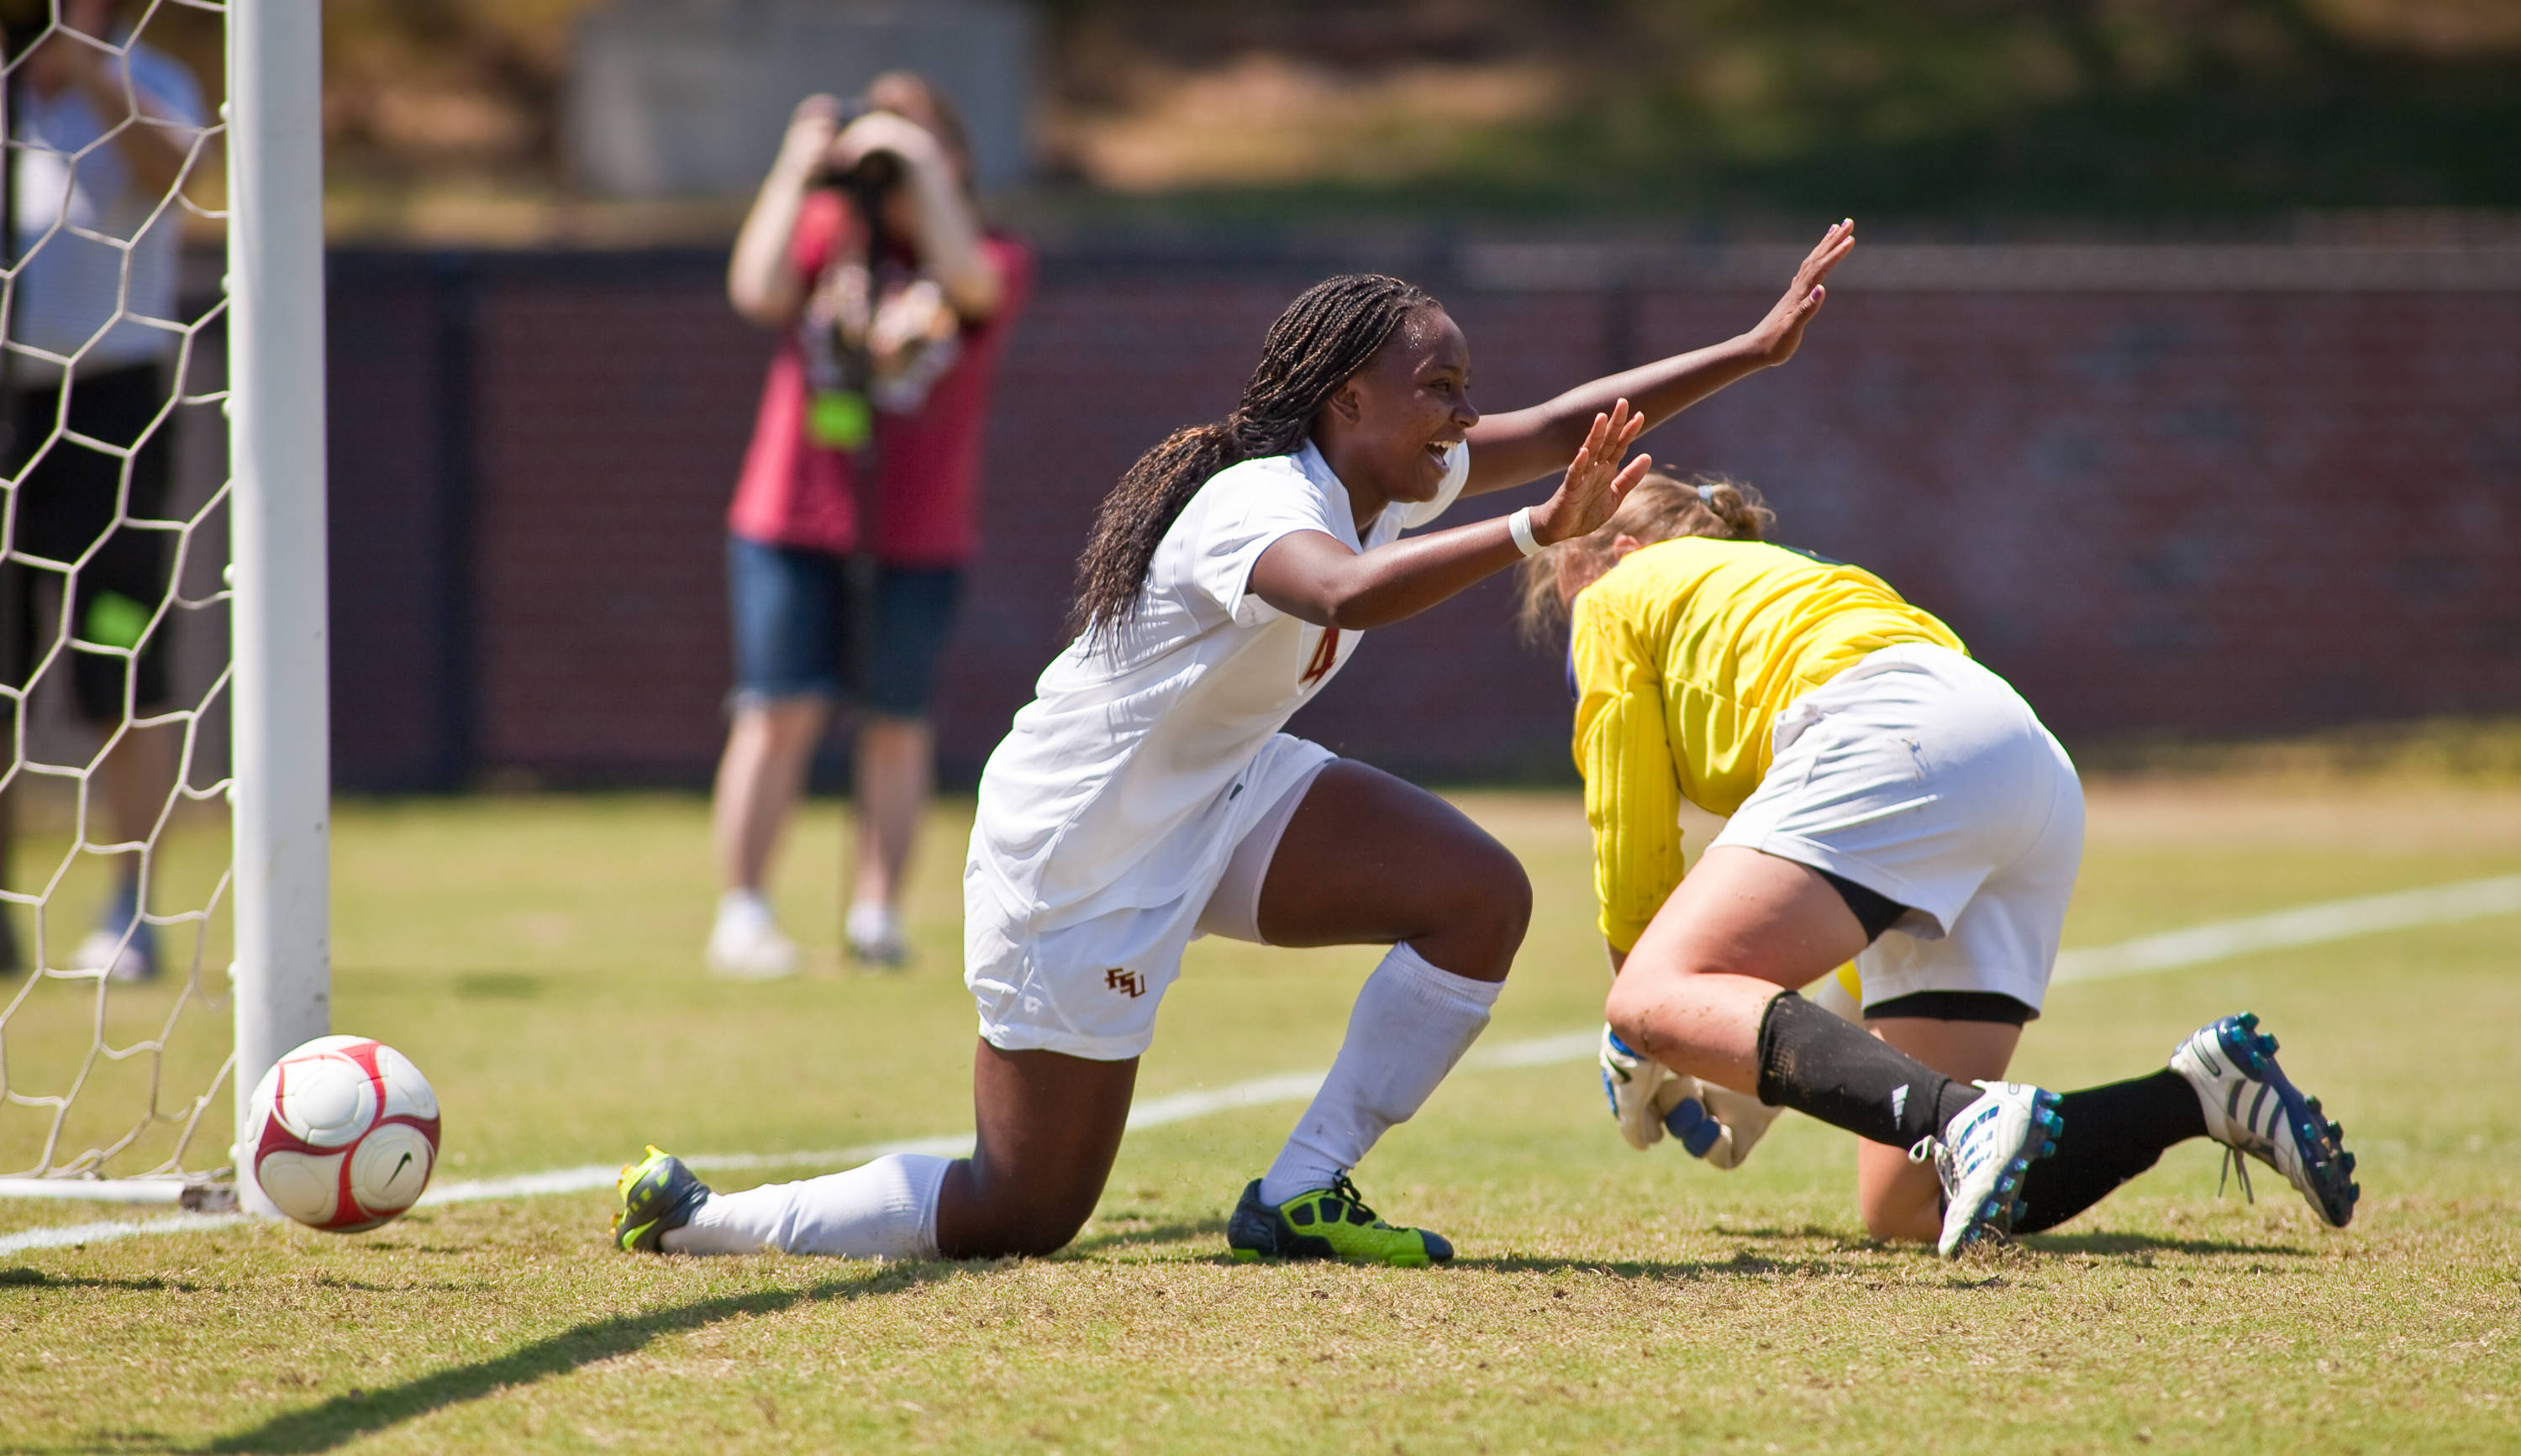 Jamia Fields finds the back of the net for the second goal of the afternoon and her second goal of the season.